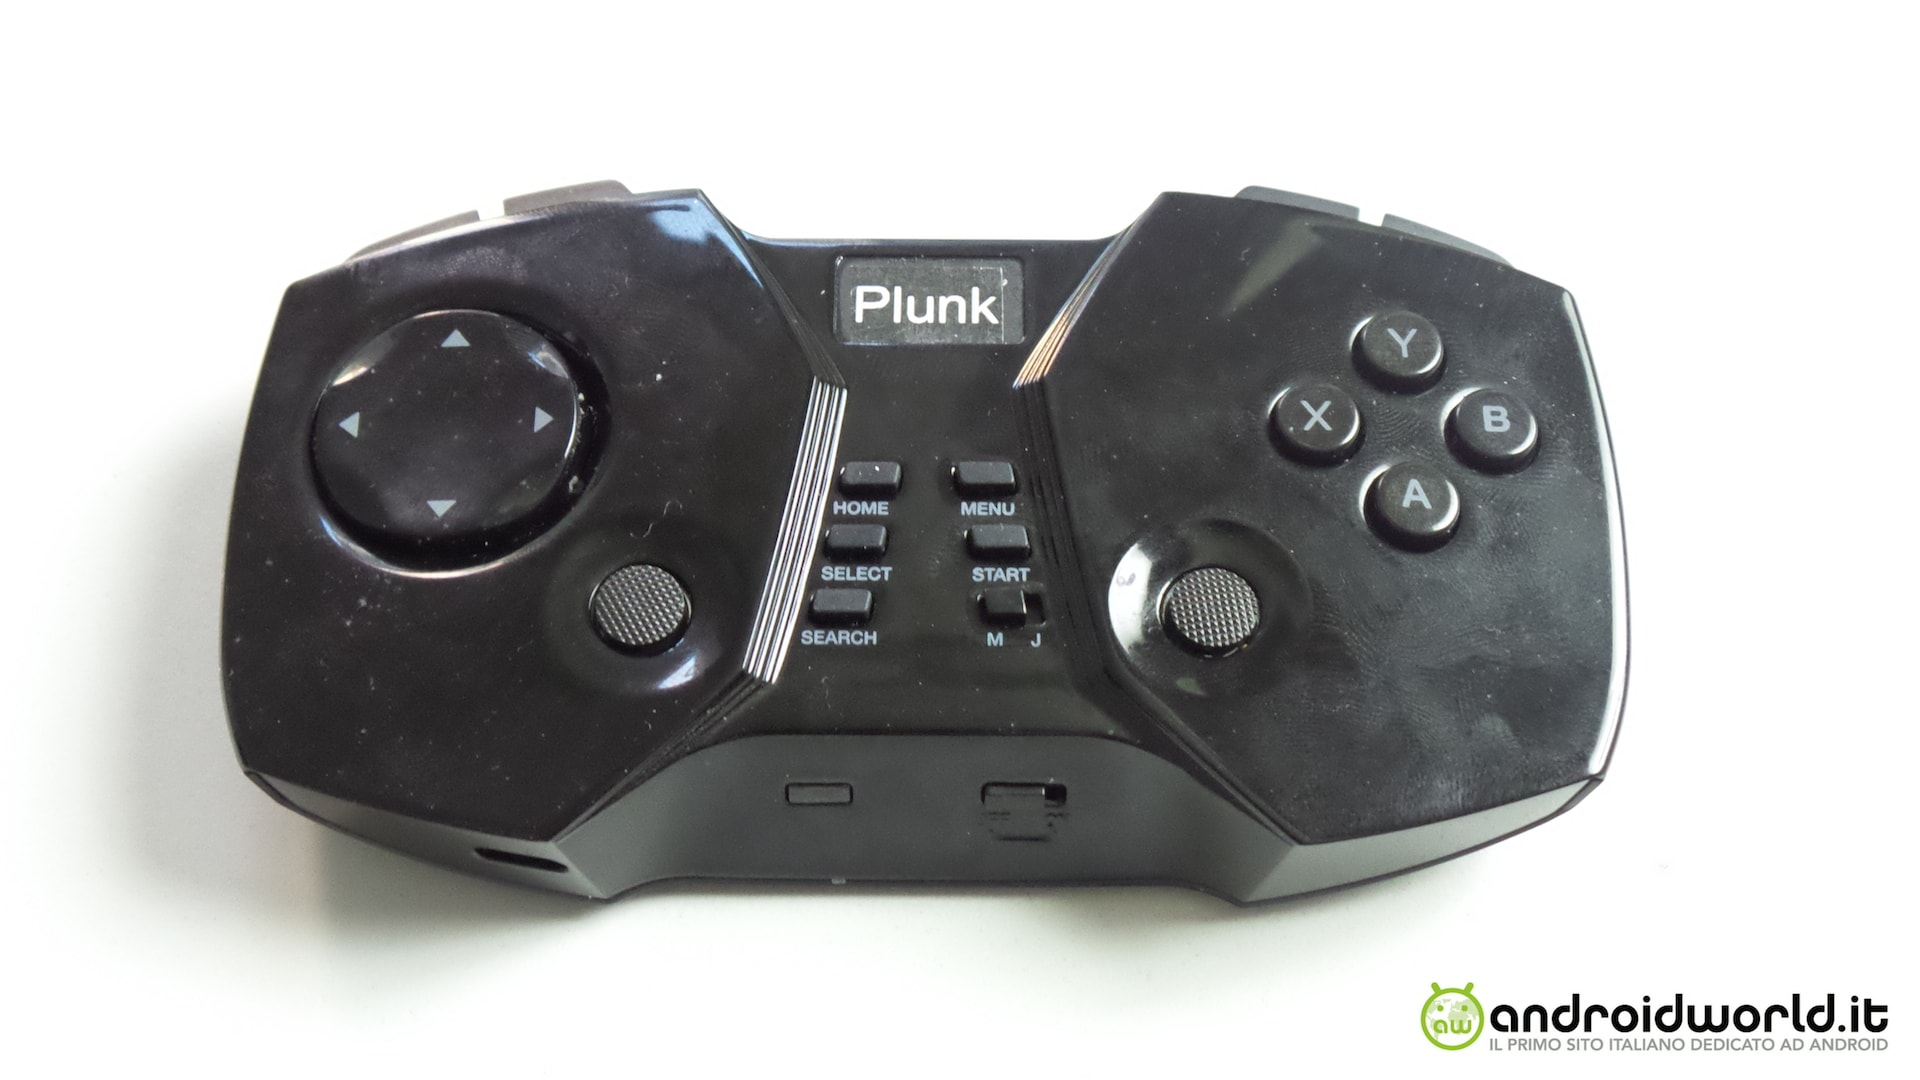 Plunk S Android Tv Box La Nostra Prova Foto E Video